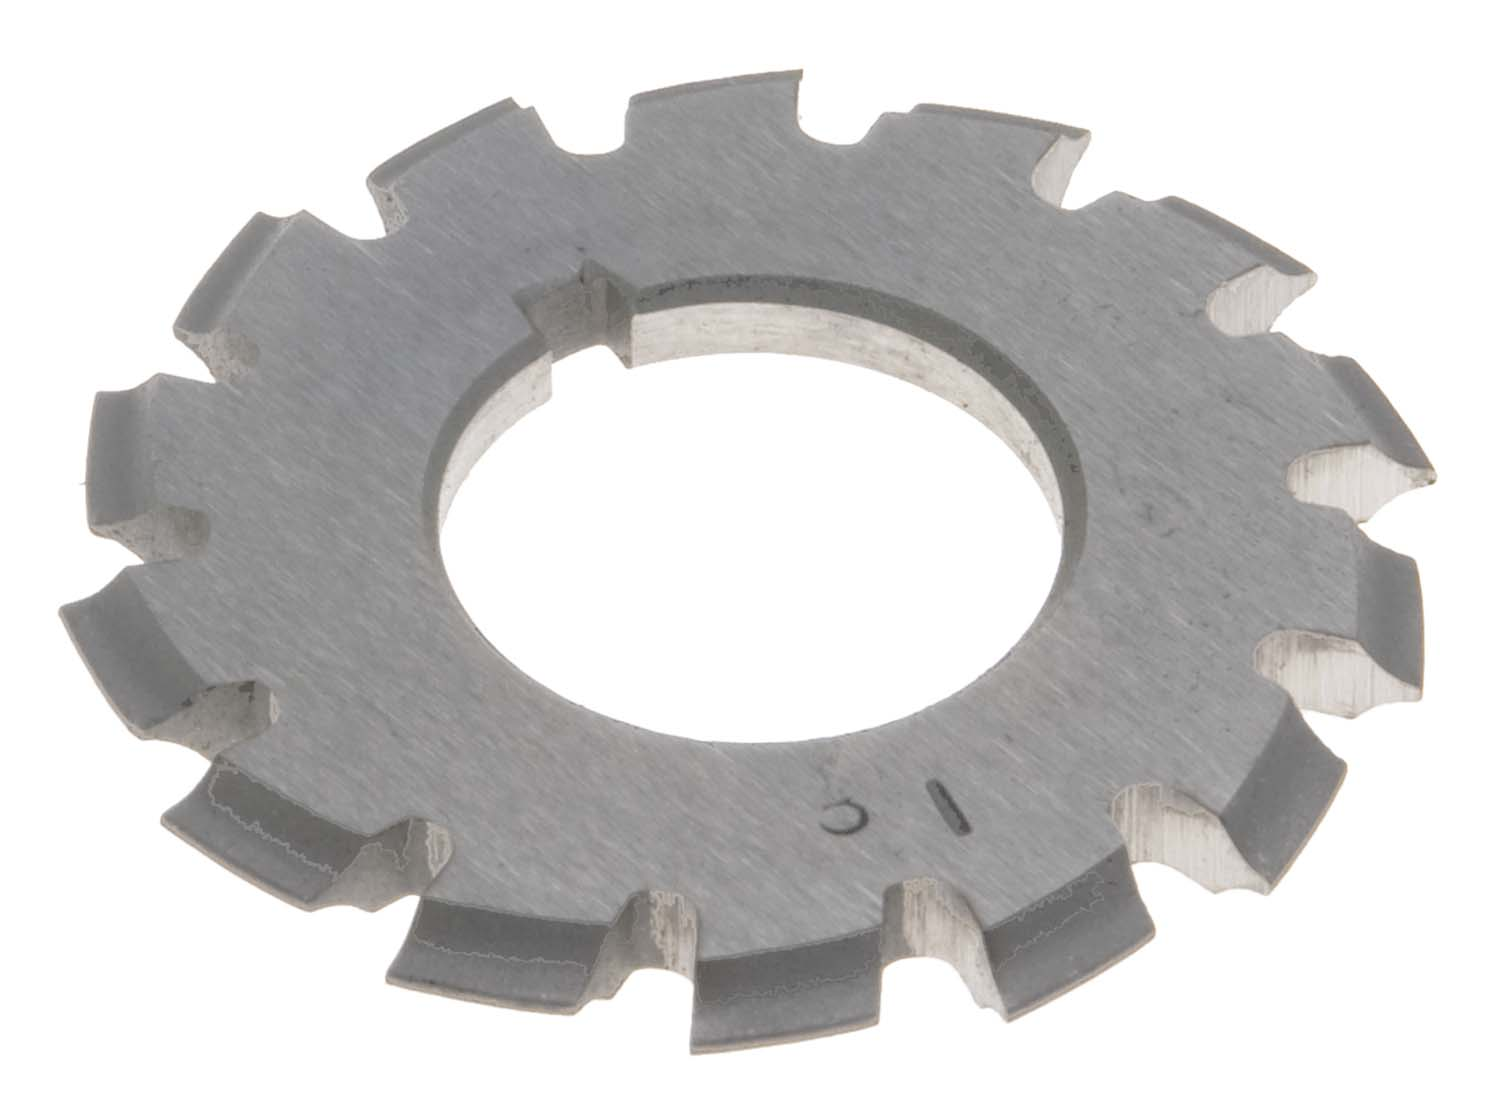 36 Diametral Pitch # 8  Involute Gear Cutter - 7/8 ID - 14-1/2 Degree Pressure Angle